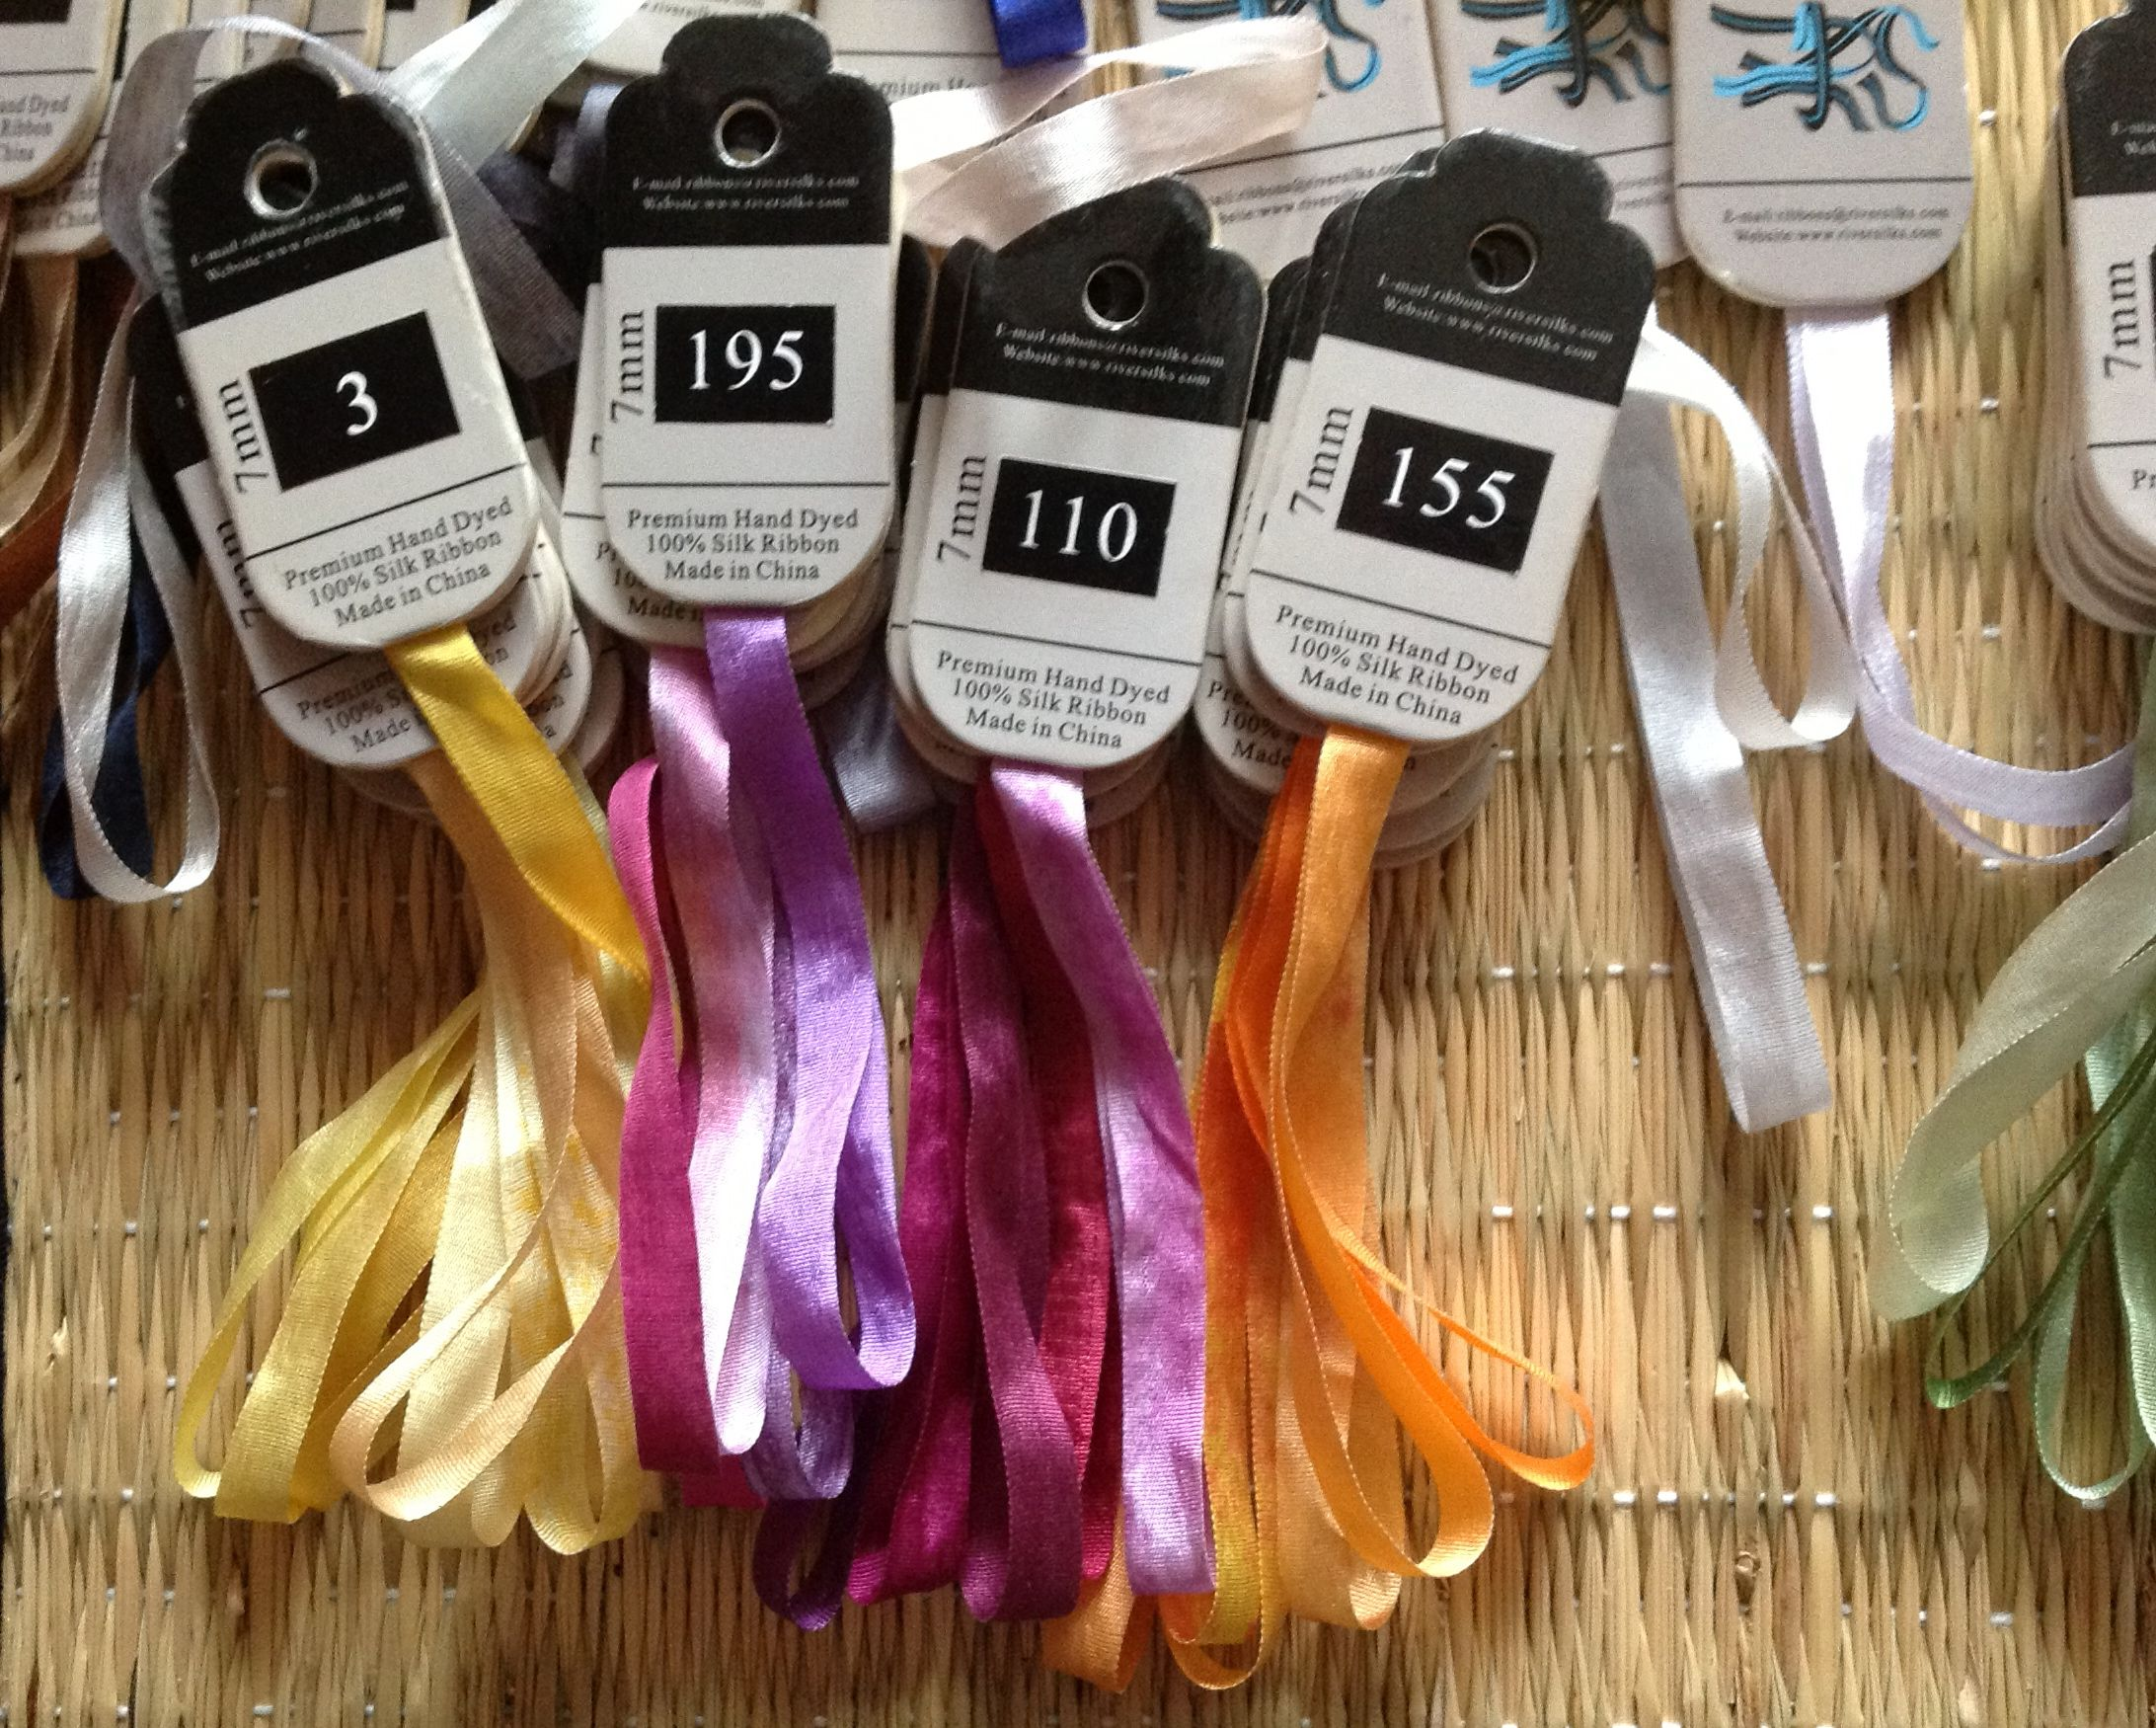 River Silks %100 silk ribbon, creating collections with cards from the color rings.